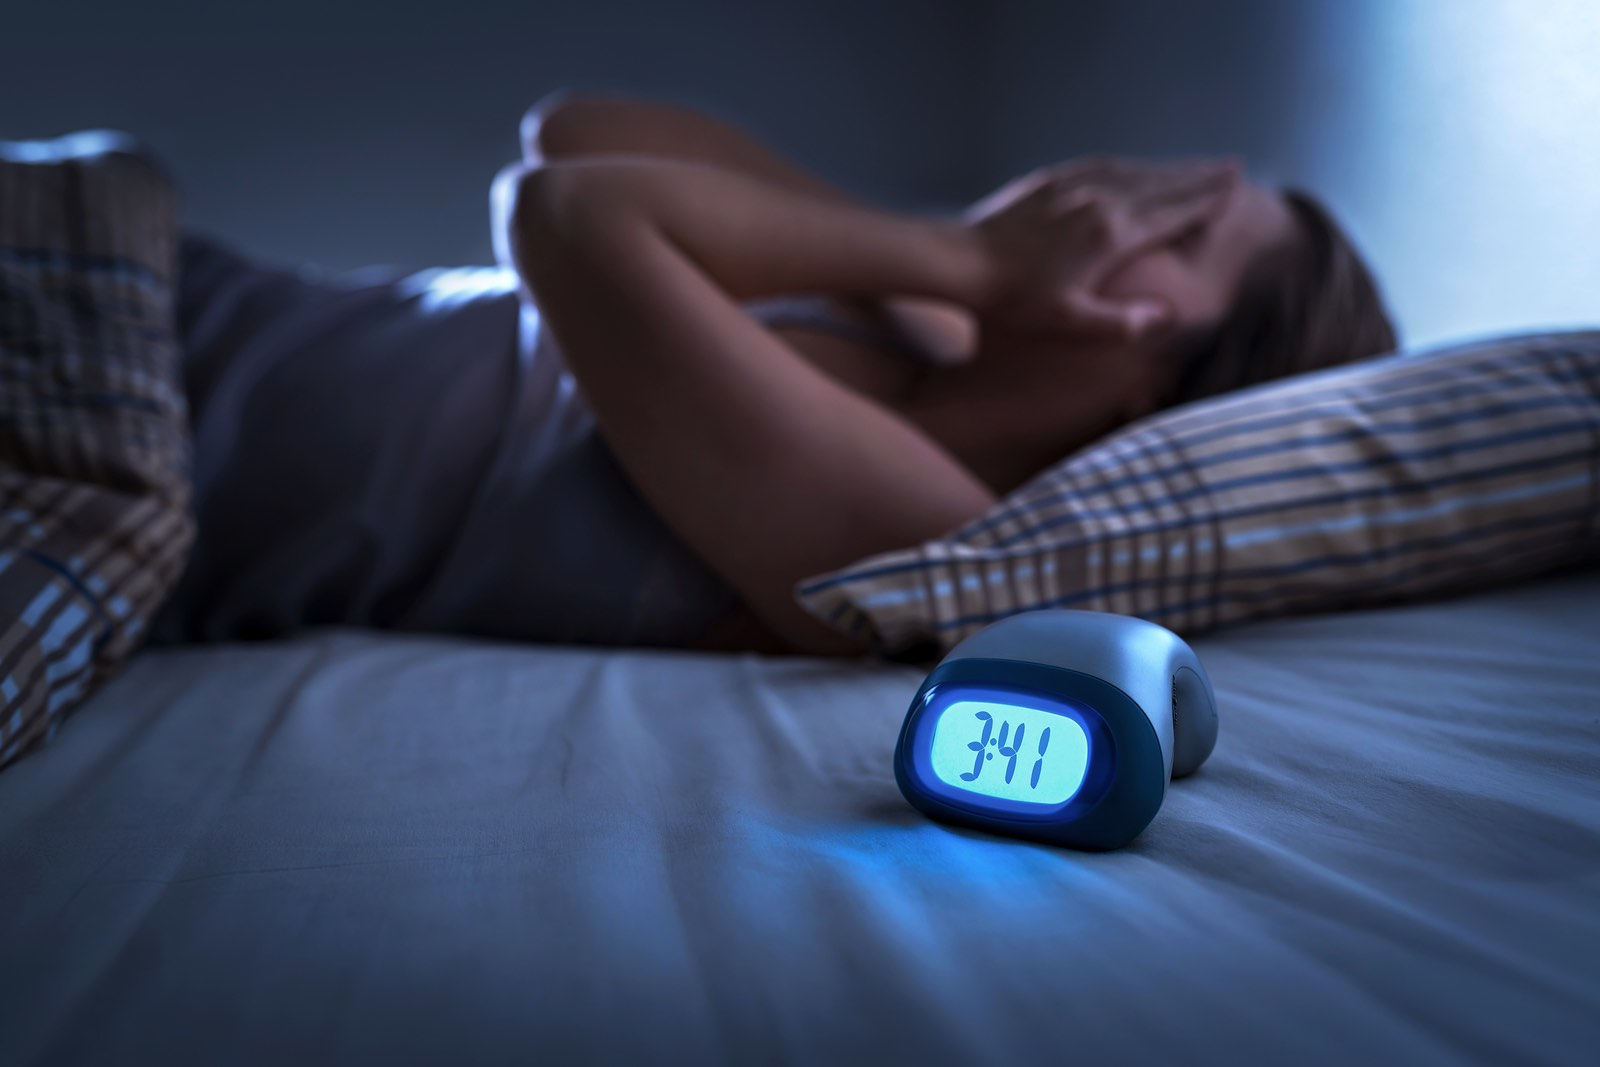 COVID-19 and Sleep - The importance of sleep in the battle against COVID-19